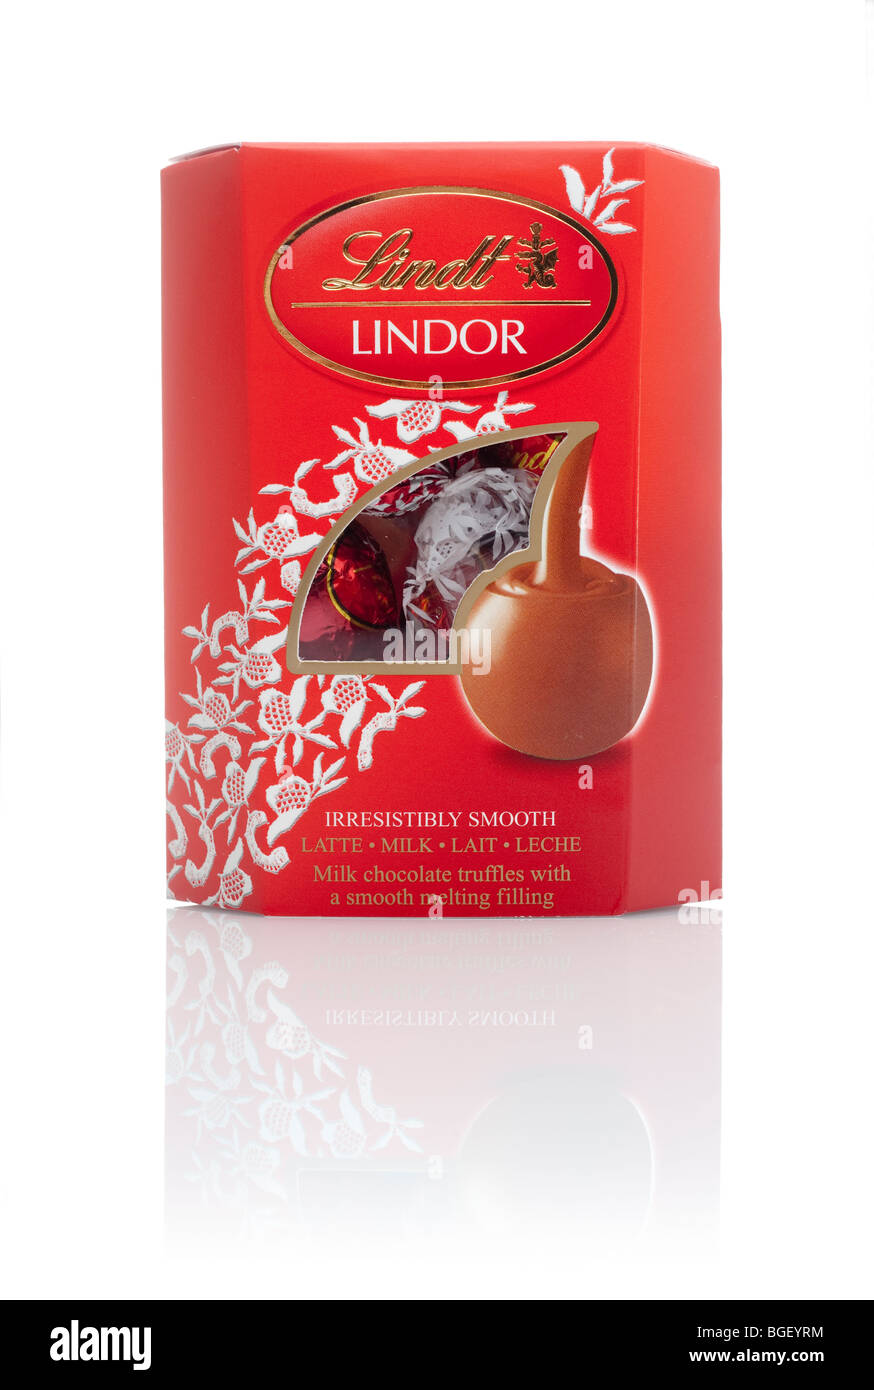 Lindt Lindor Truffles Calories White Chocolate